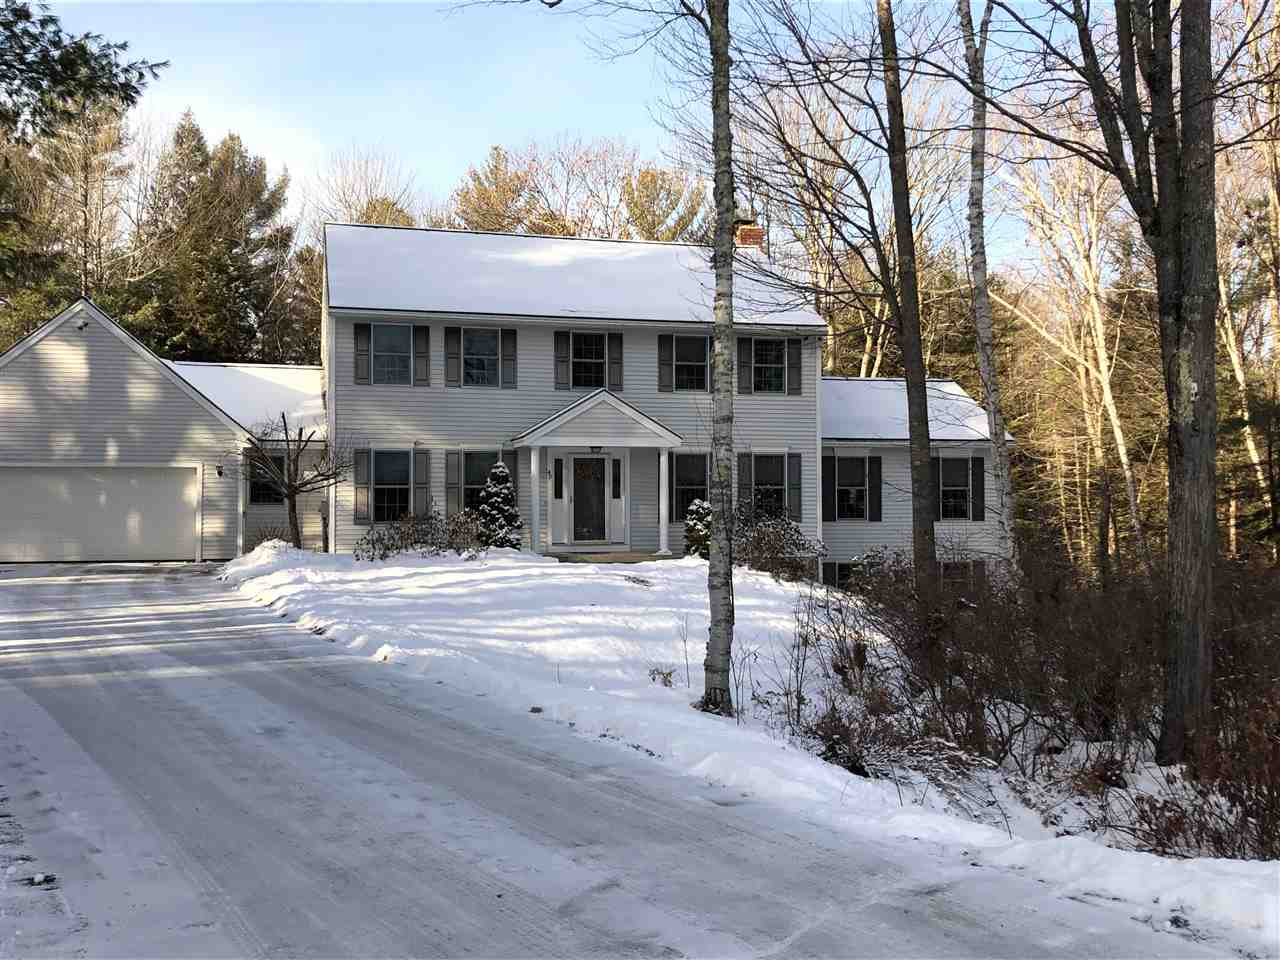 MLS 4770300: 49 Reynolds Drive, Peterborough NH